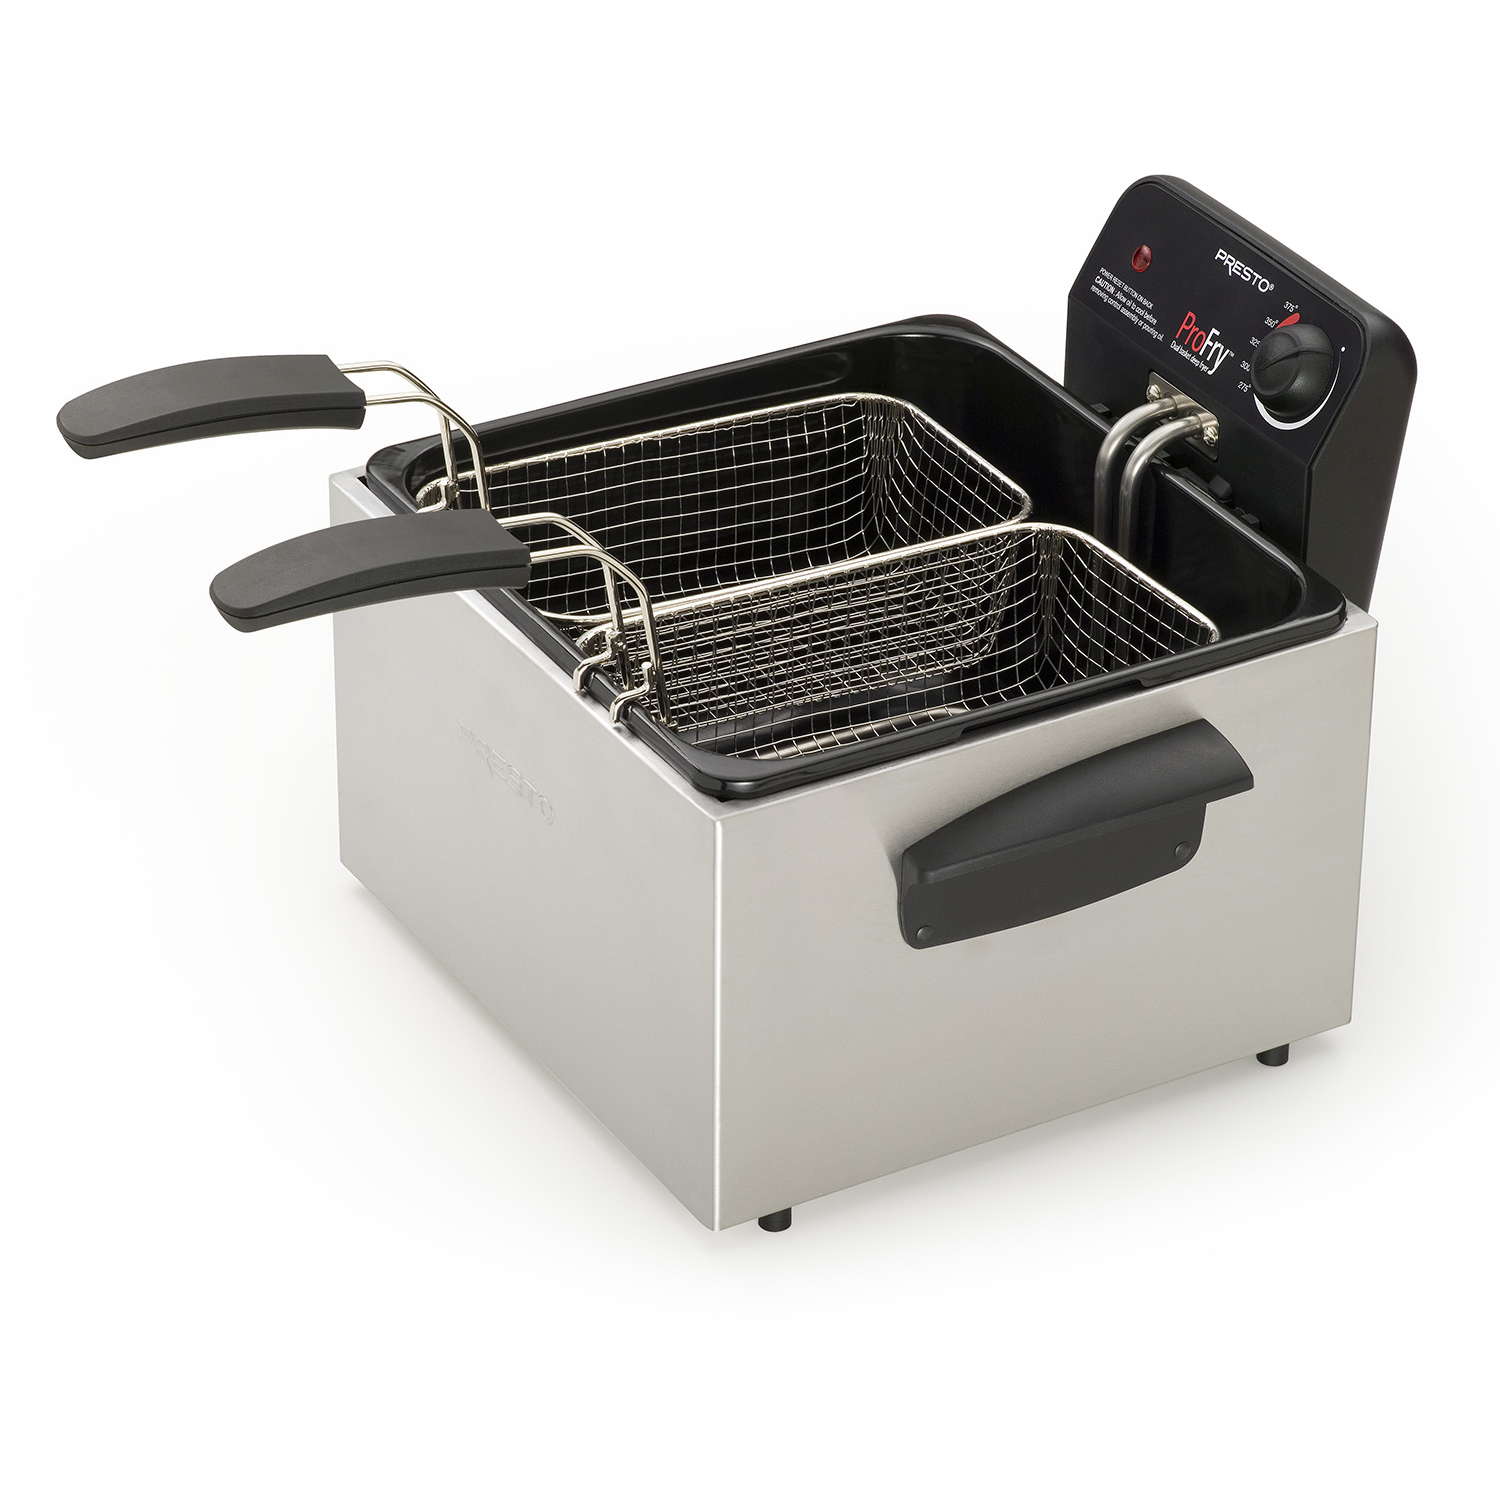 Presto Stainless Steel Dual Basket ProFry™ immersion element deep fryer